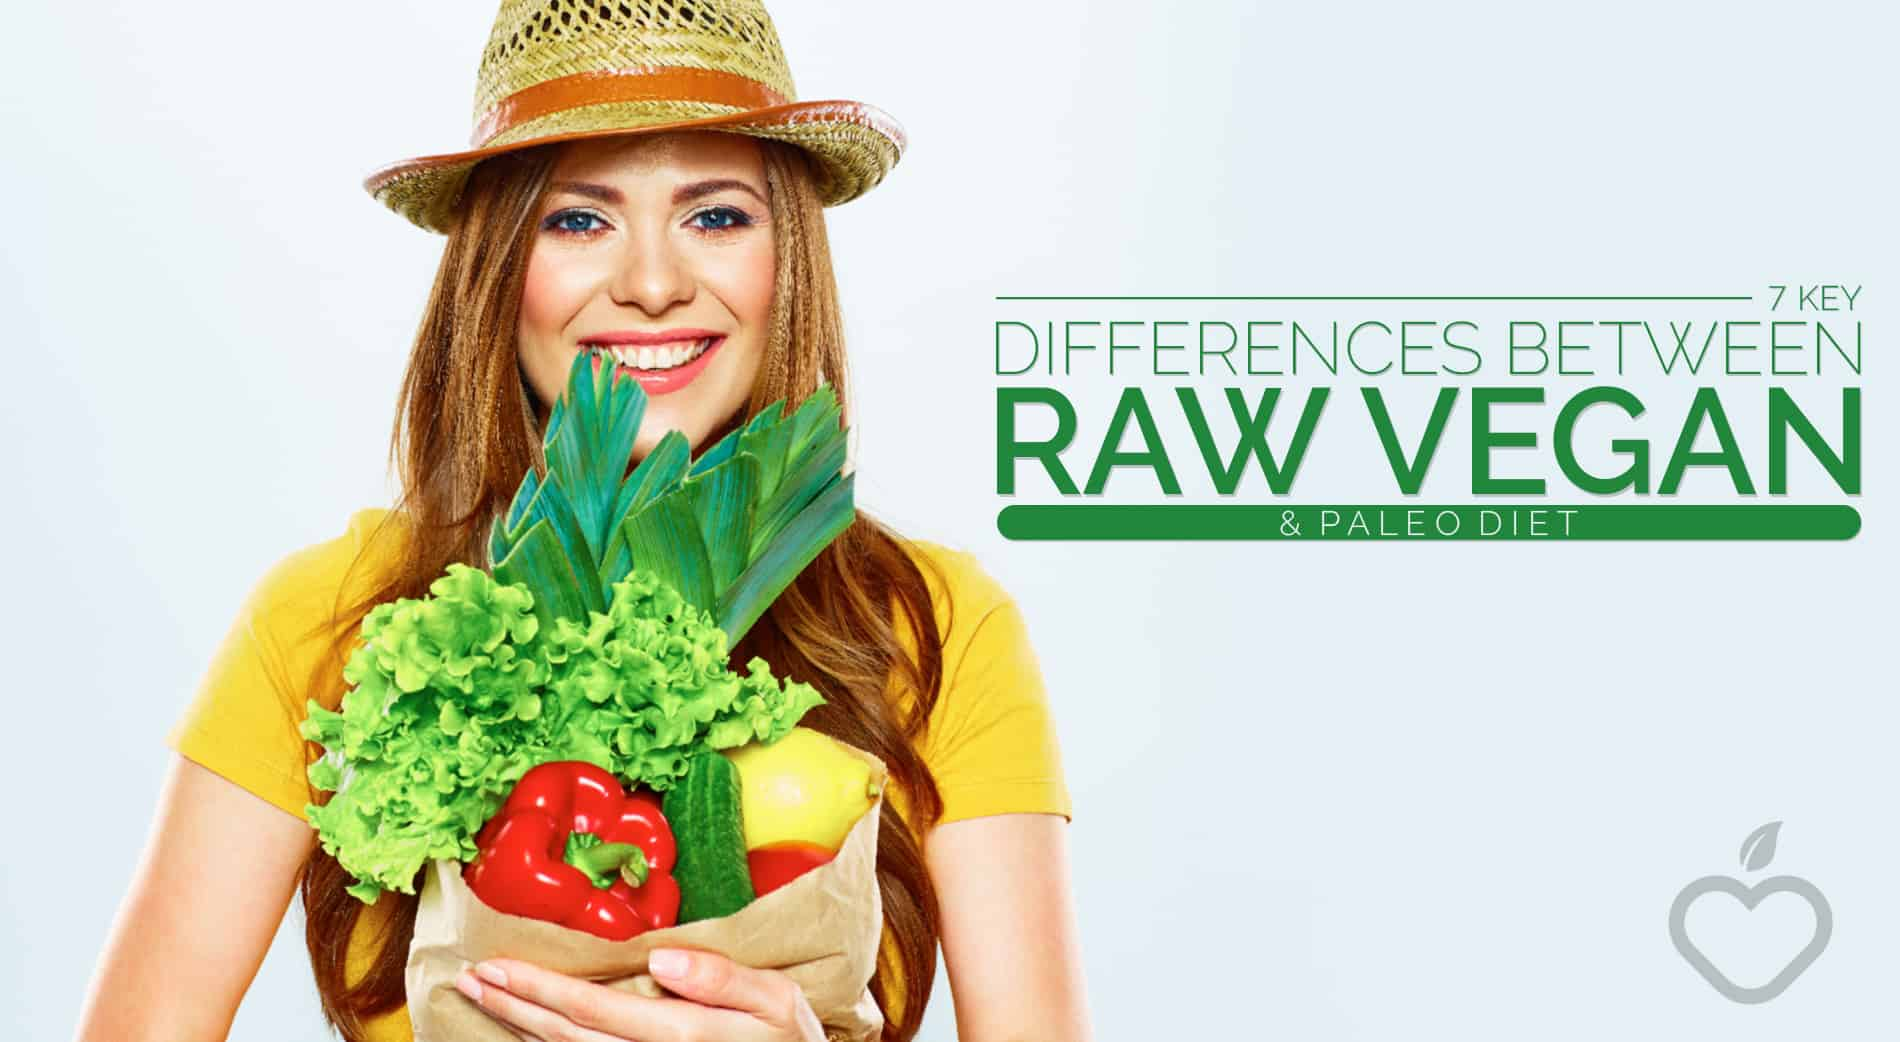 Raw Vegan Image Design 1 1 - 7 Key Differences Between Raw Vegan And Paleo Diet